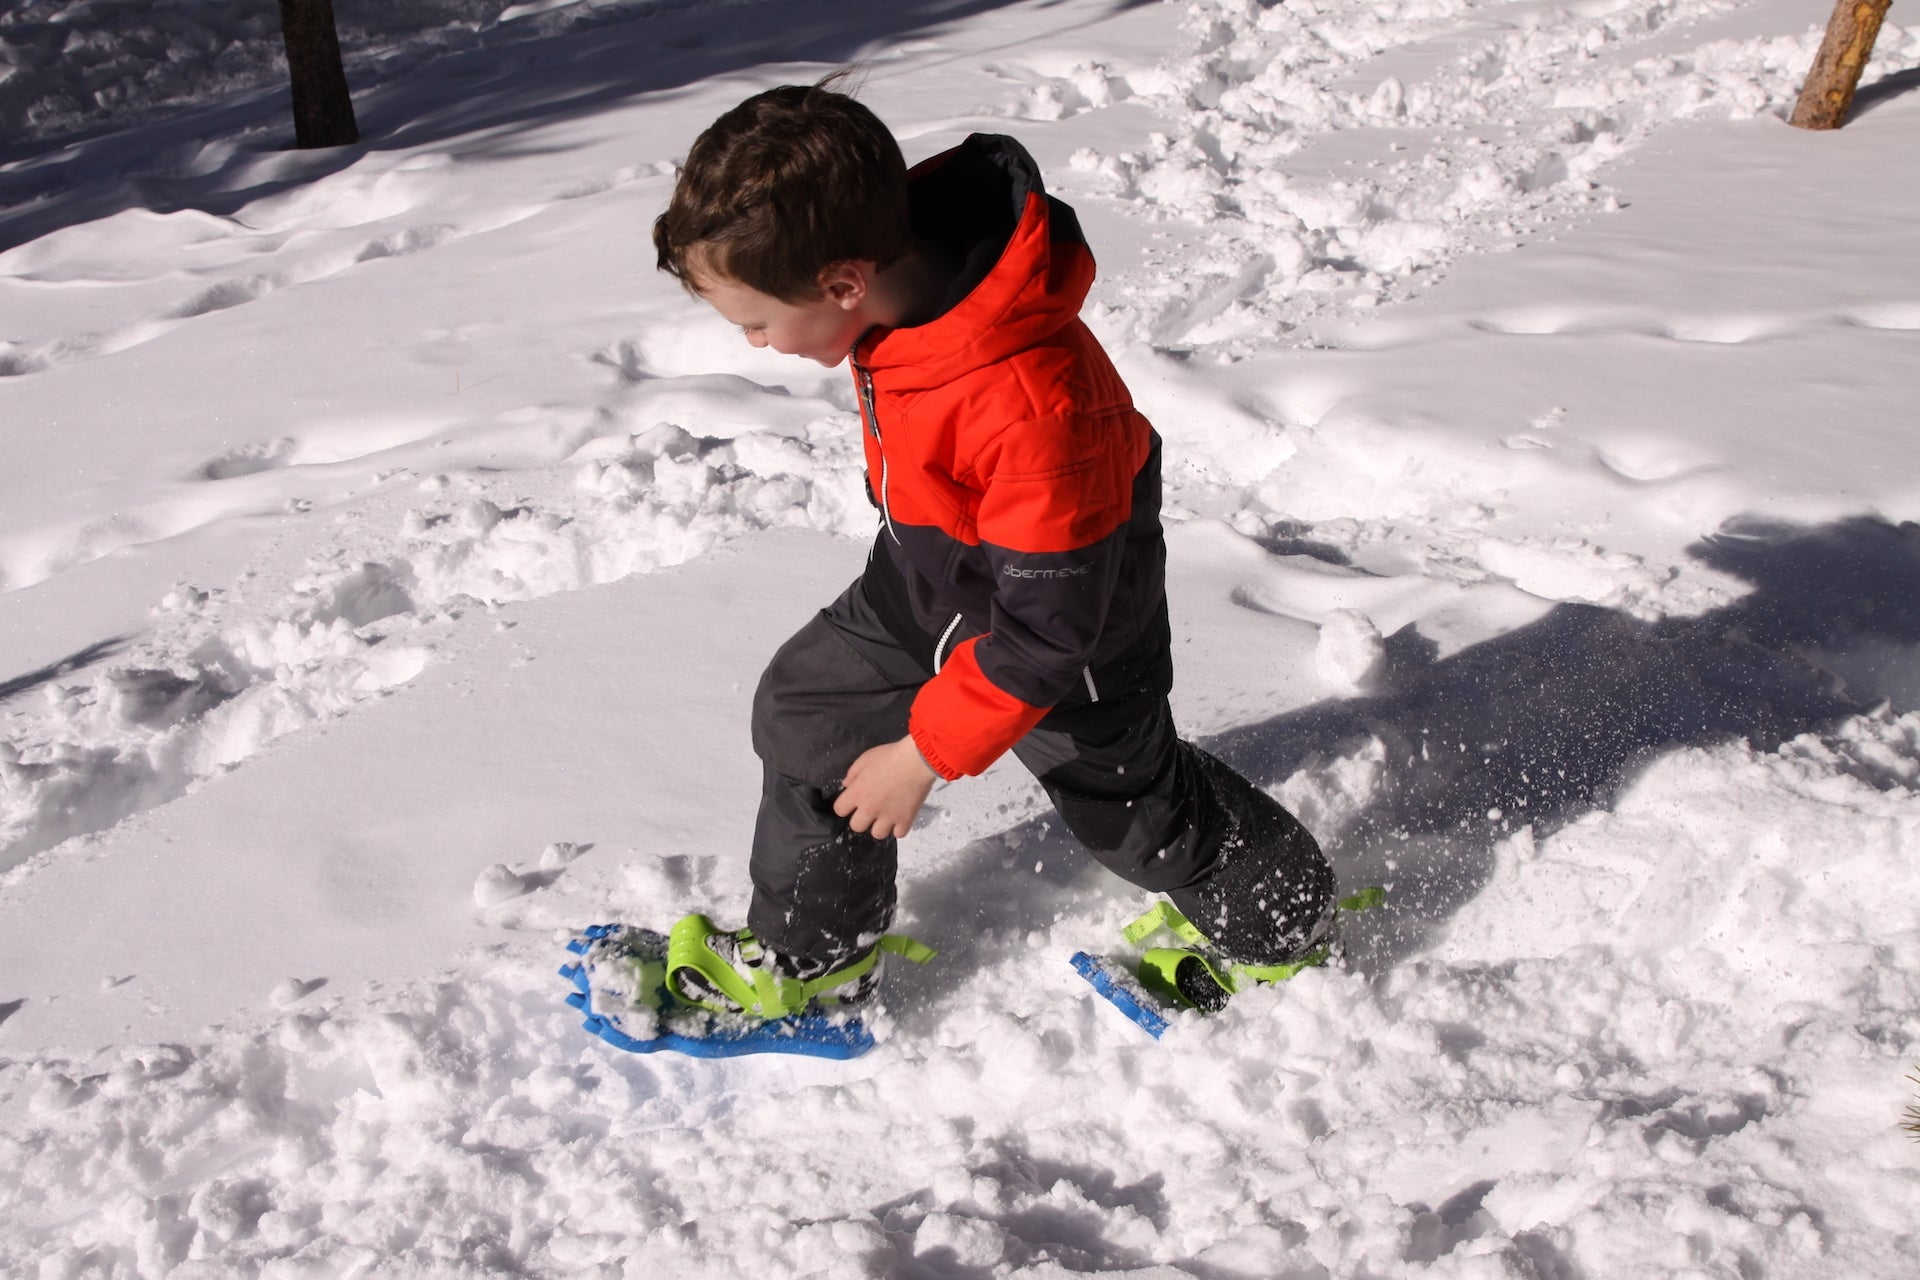 766c33b522f9 Blog - Preparing for Your First Snow Trip with Family